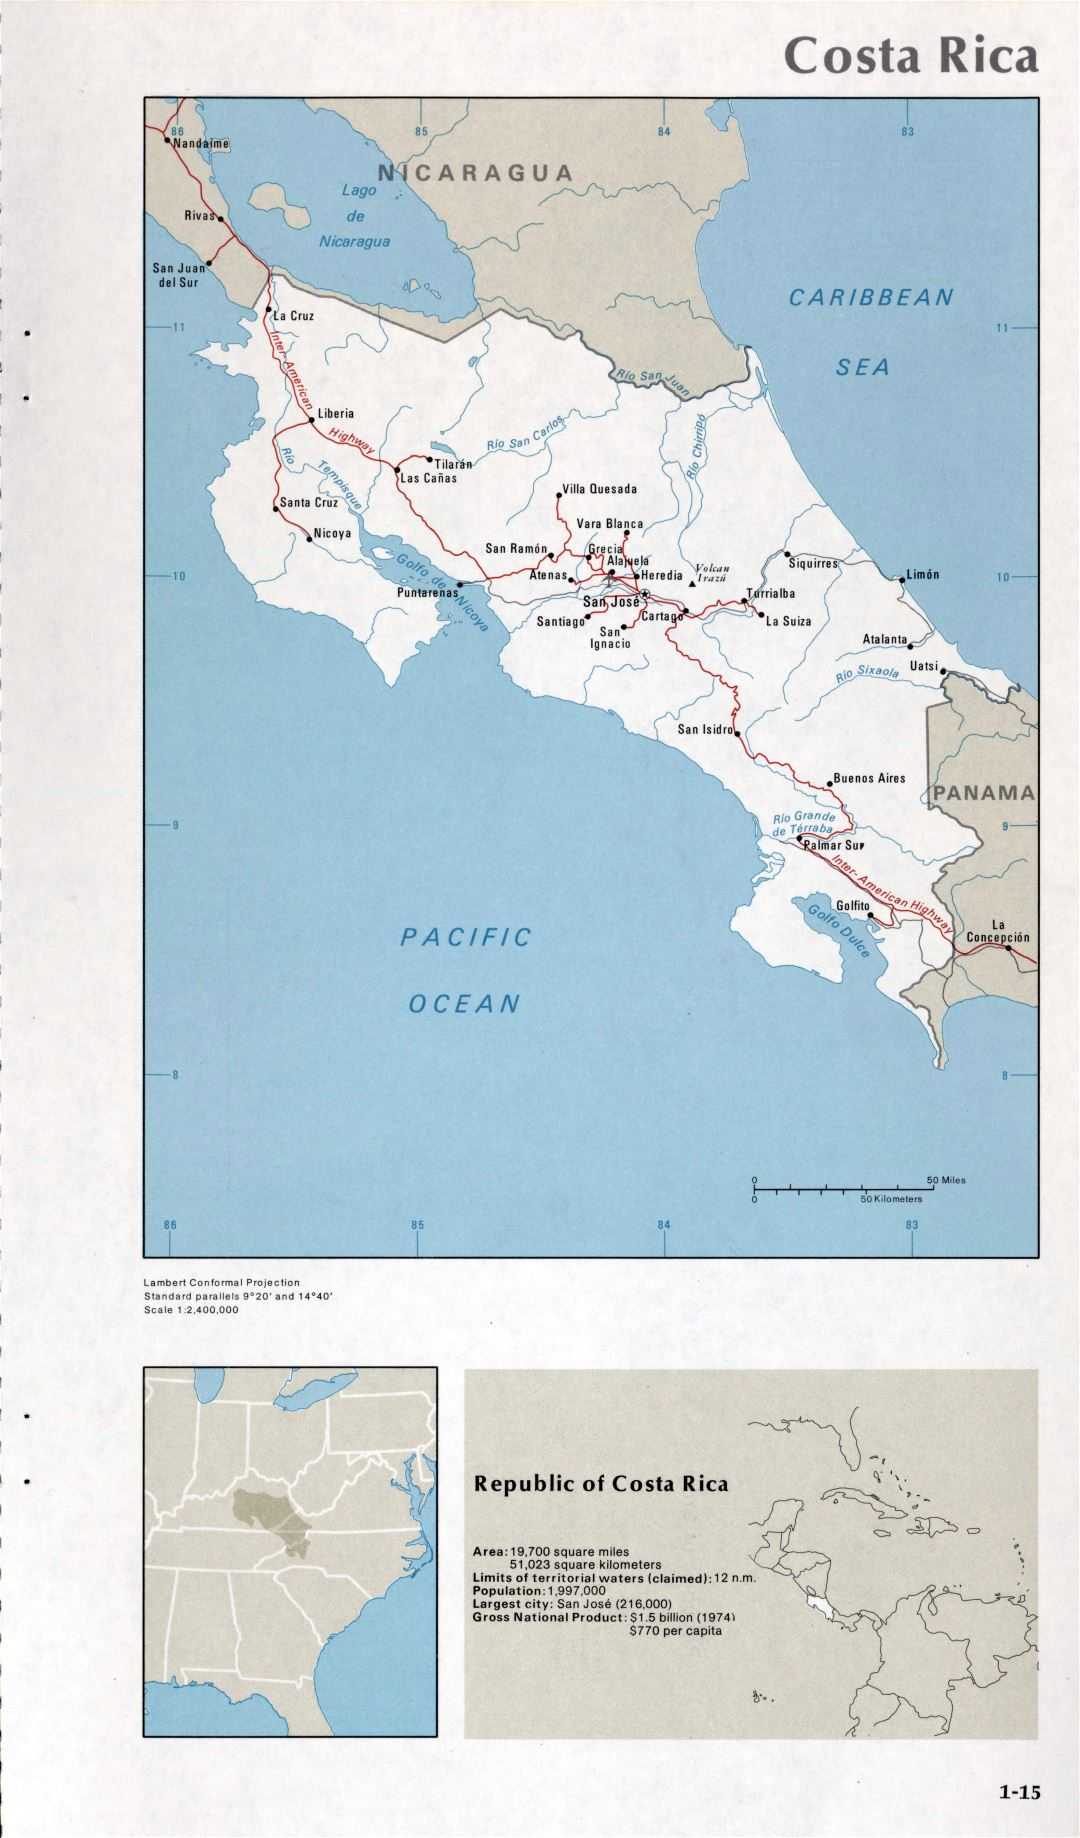 Map of Costa Rica (1-15)